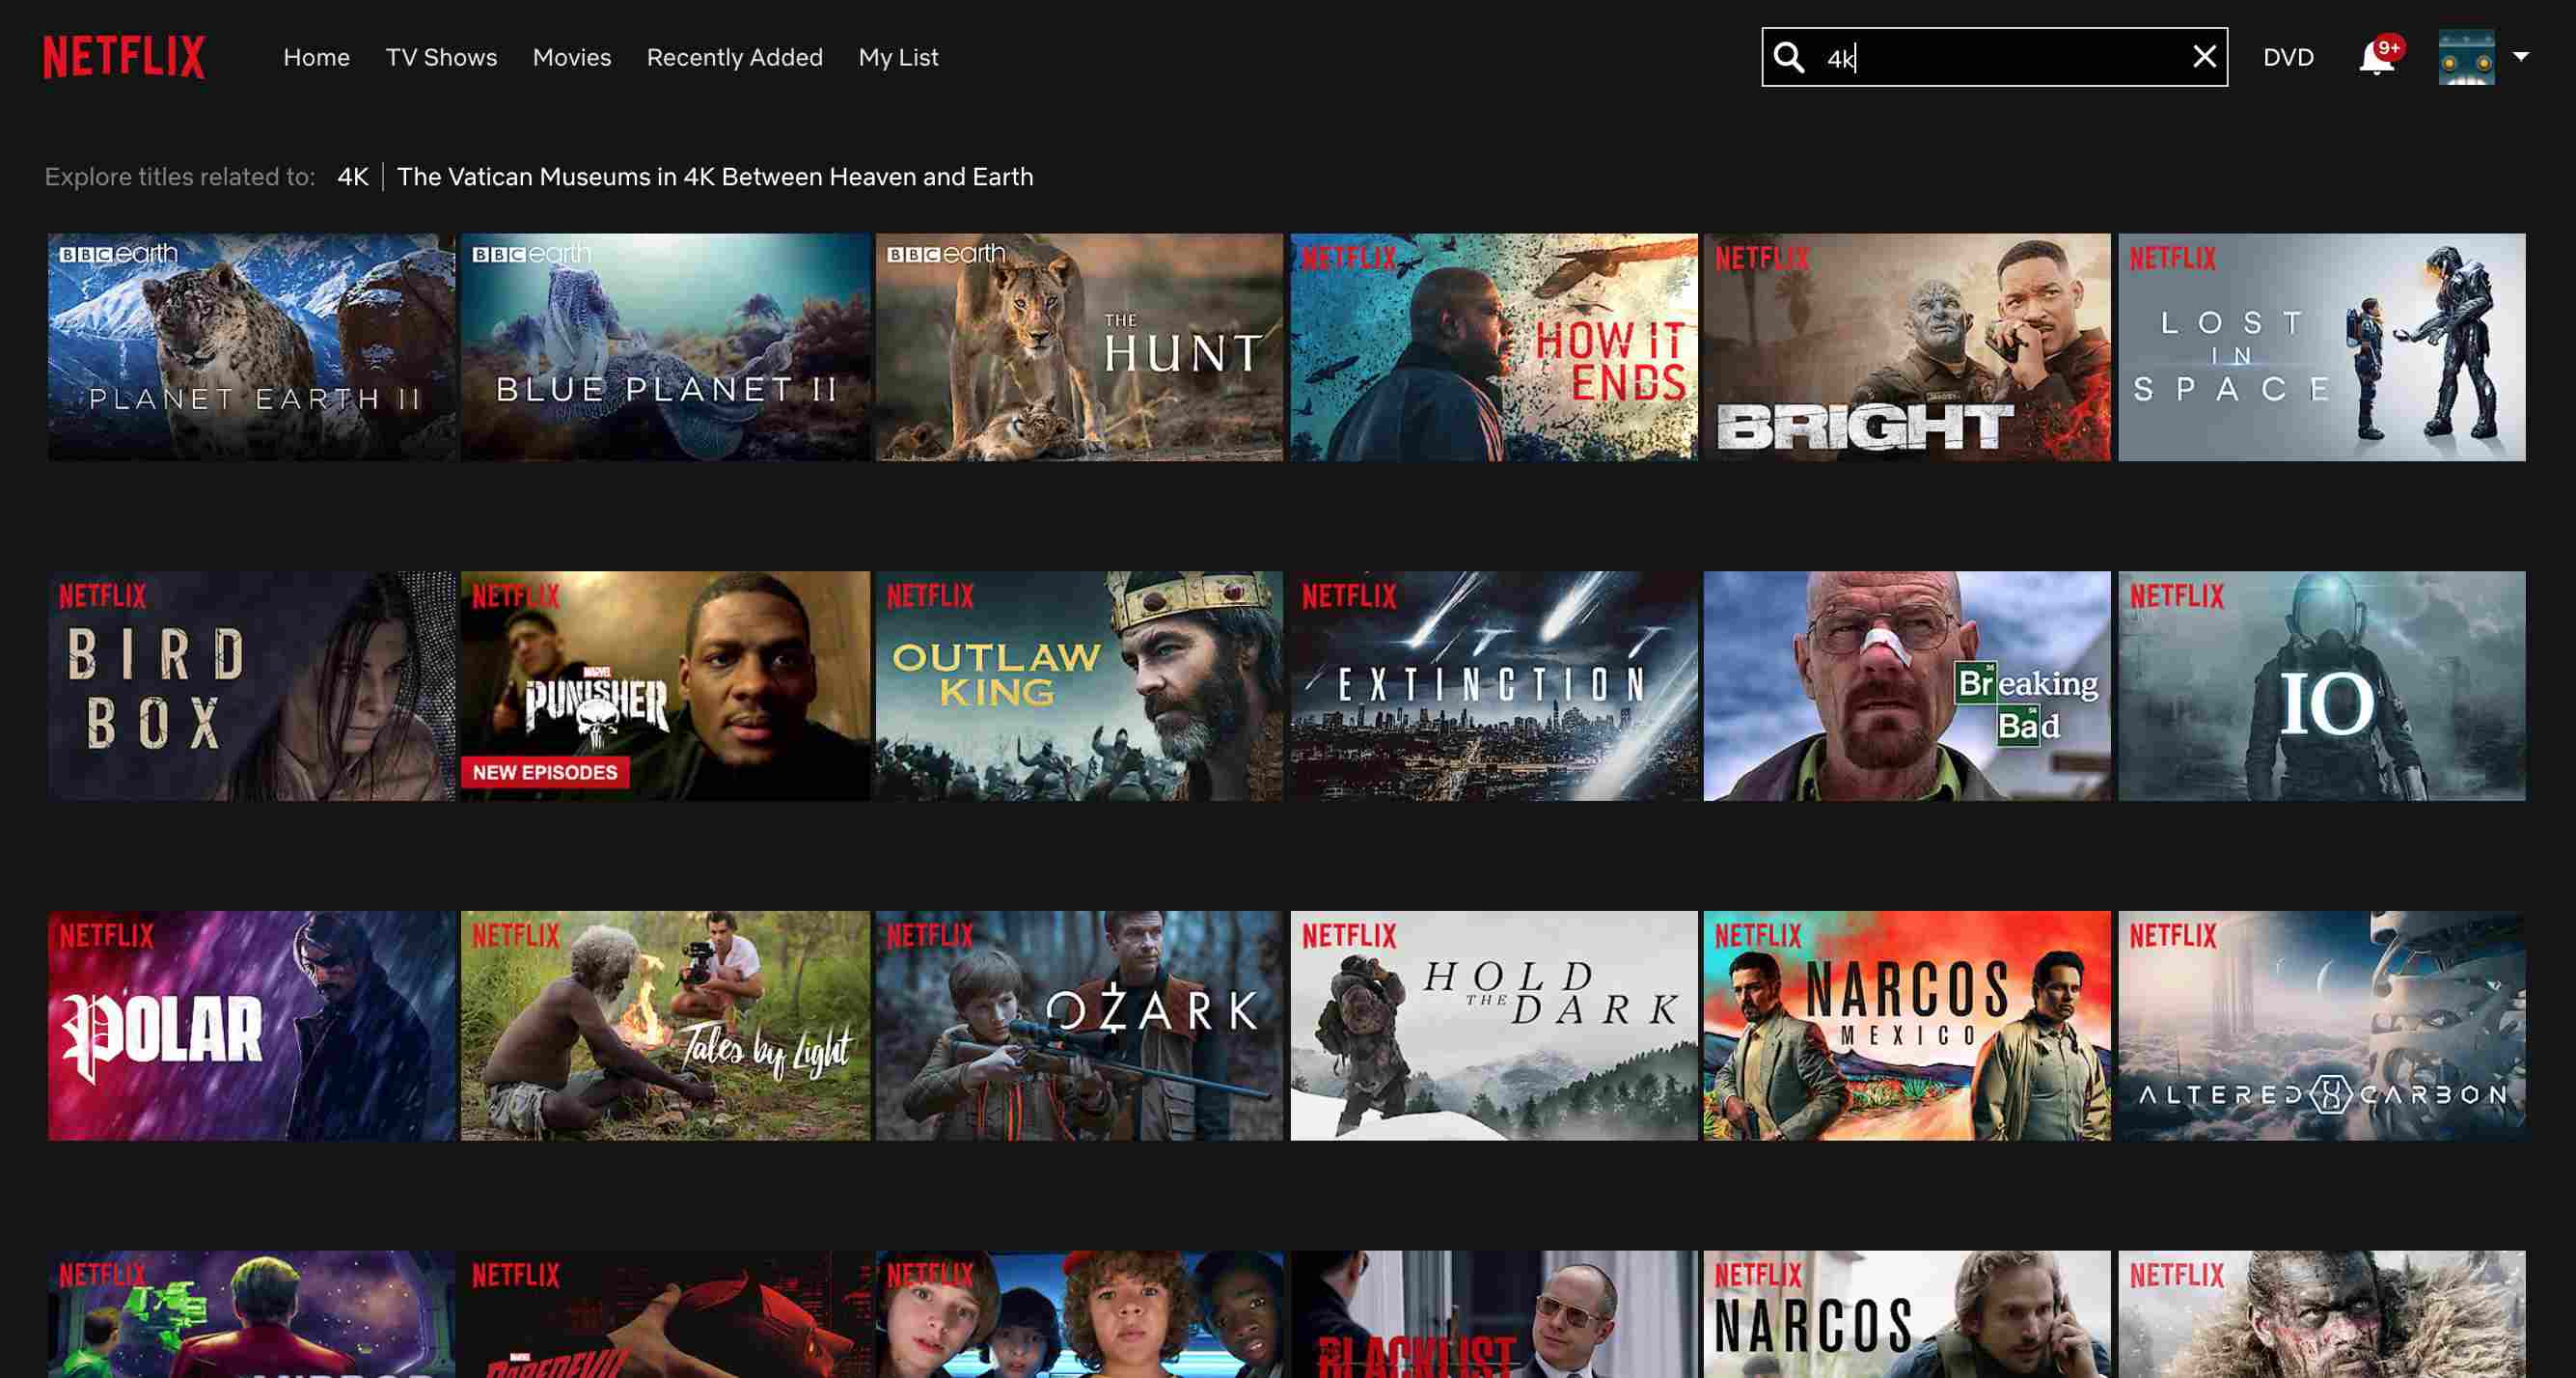 Streaming Netflix in 4K – What You Need to Know